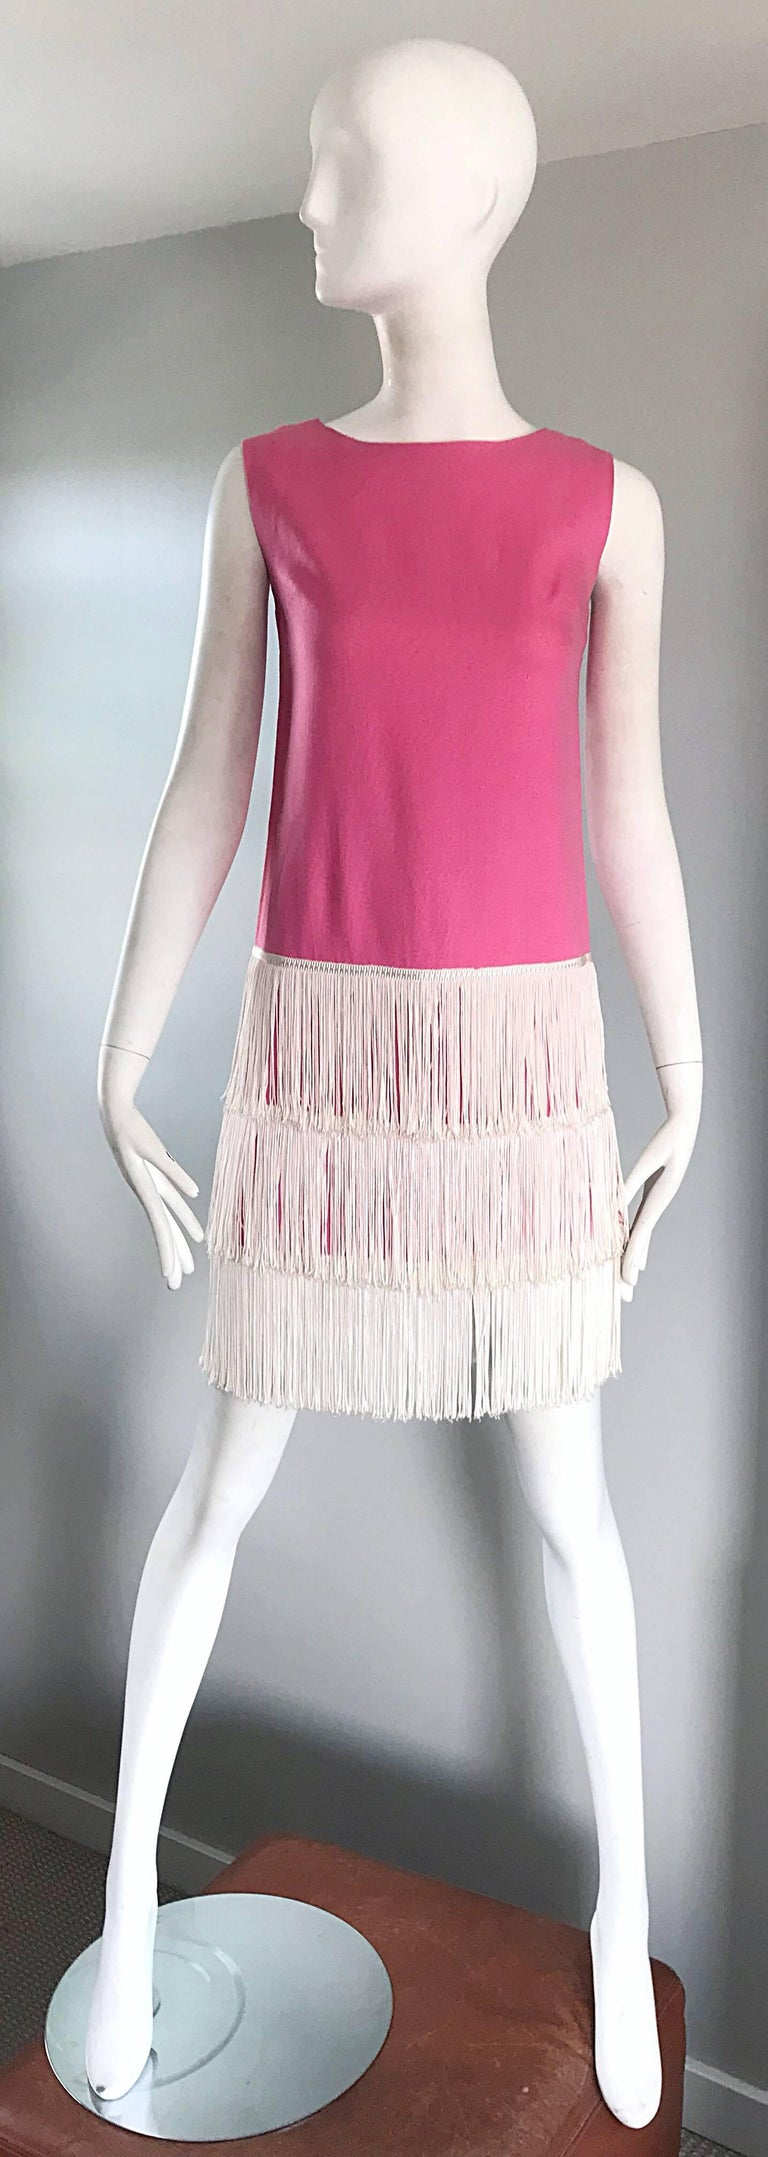 1960s does 1920s Bubblegum Pink + White Fringe Vintage 60s Flapper Shift Dress For Sale 6